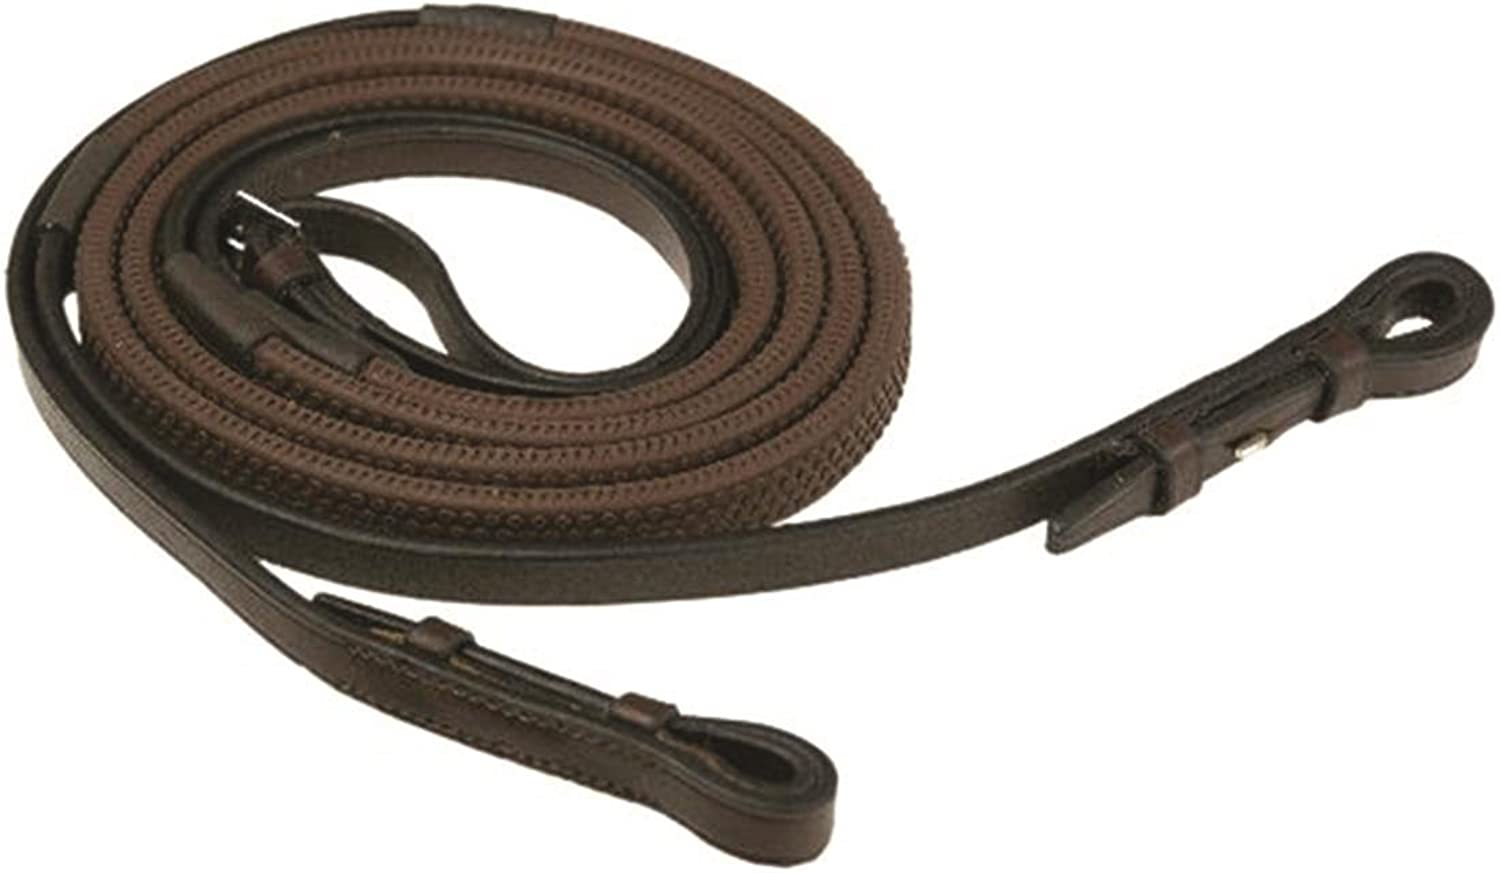 GATSBY LEATHER COMPANY 283231 Rubber Grip Reins Havanna Brown, 5 8